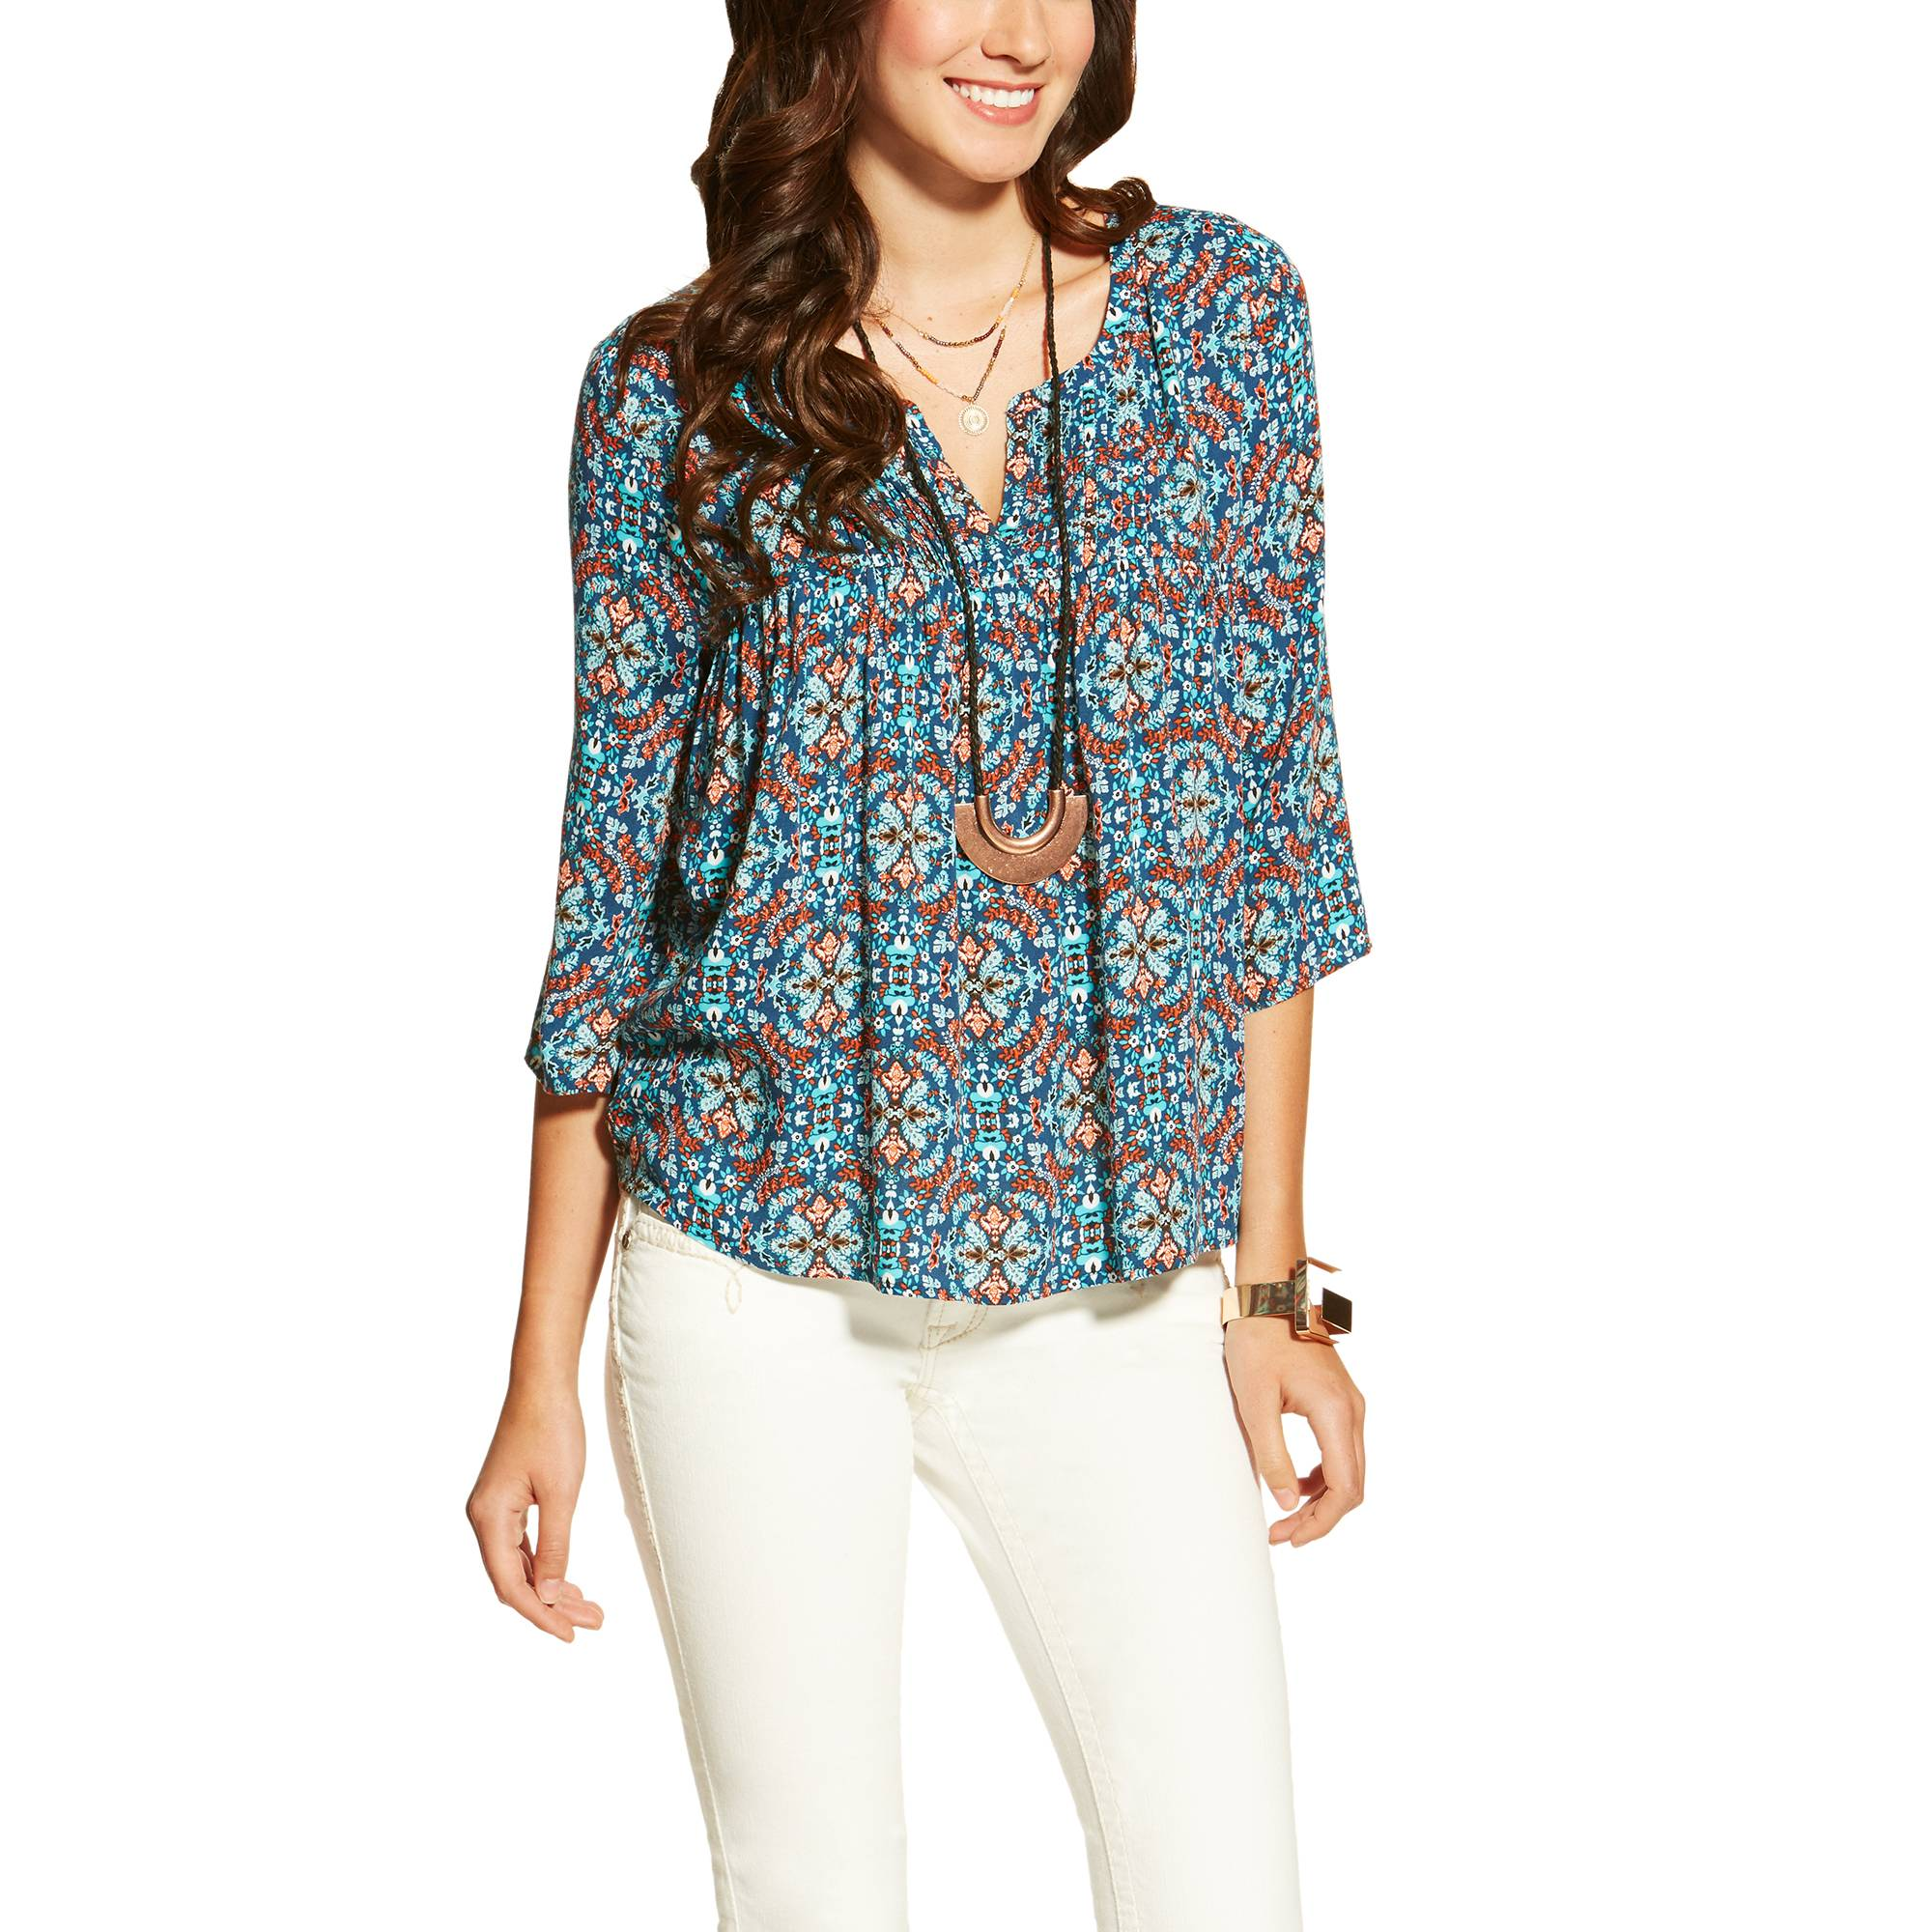 Ariat Ladies Bliss Top - Multi